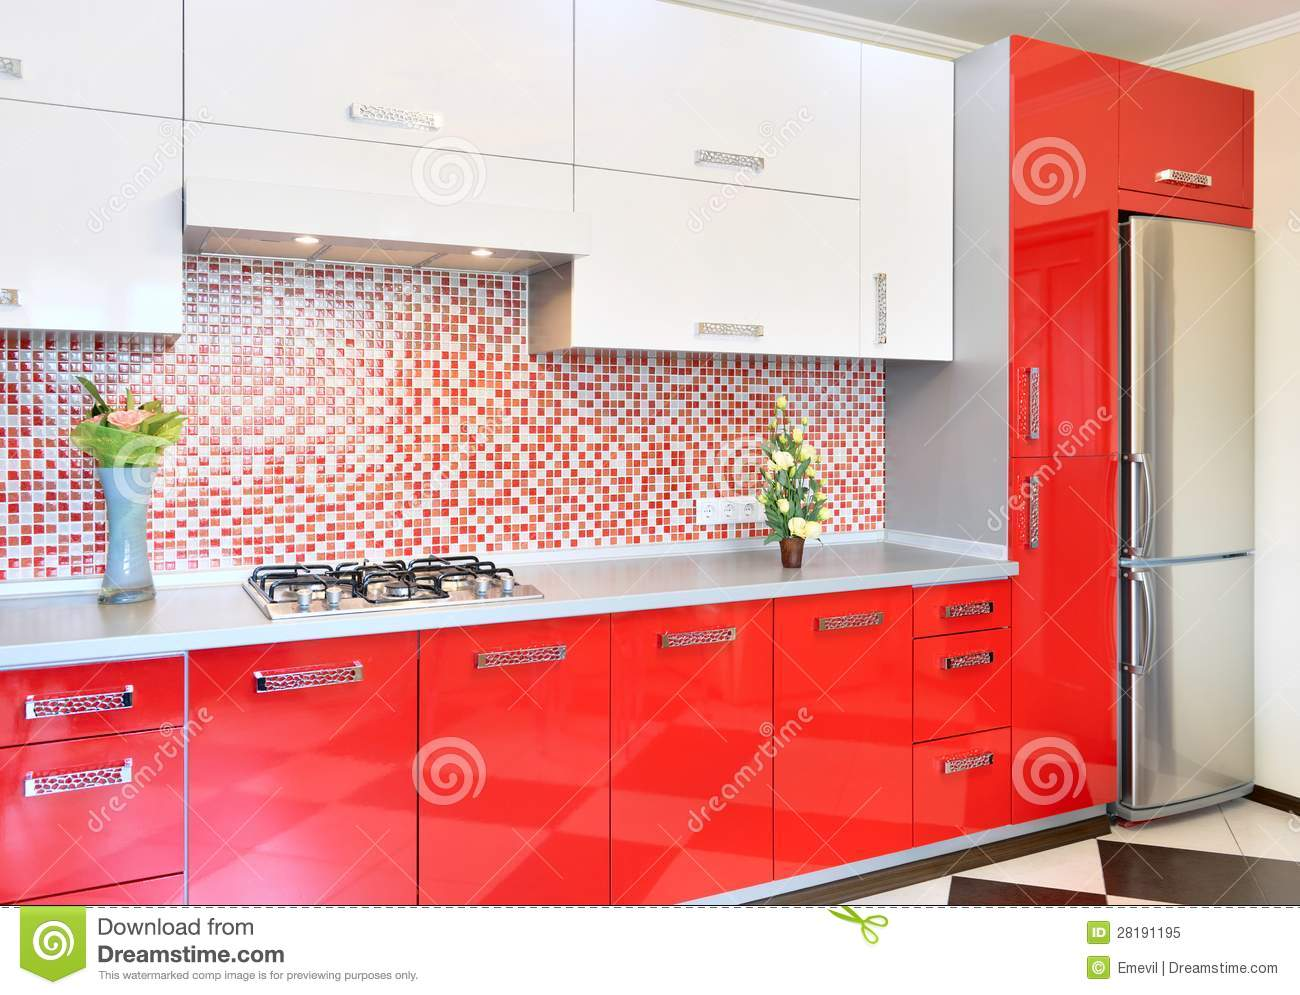 kitchen cabinet plans black hardware for cabinets red and white royalty free stock photo - image ...